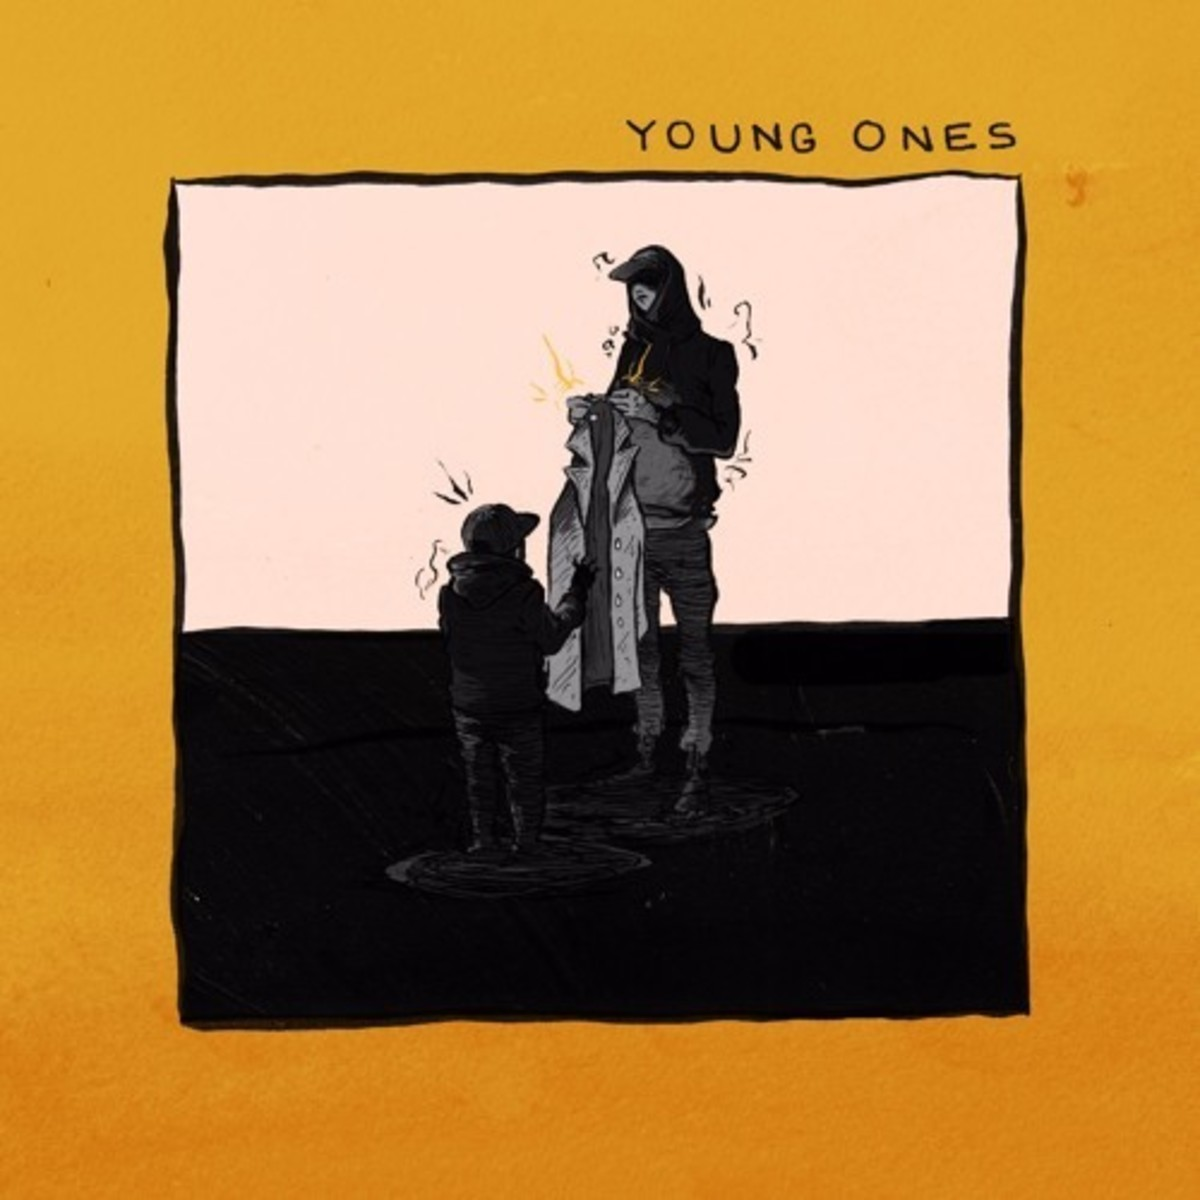 kirk-knight-young-ones.jpg